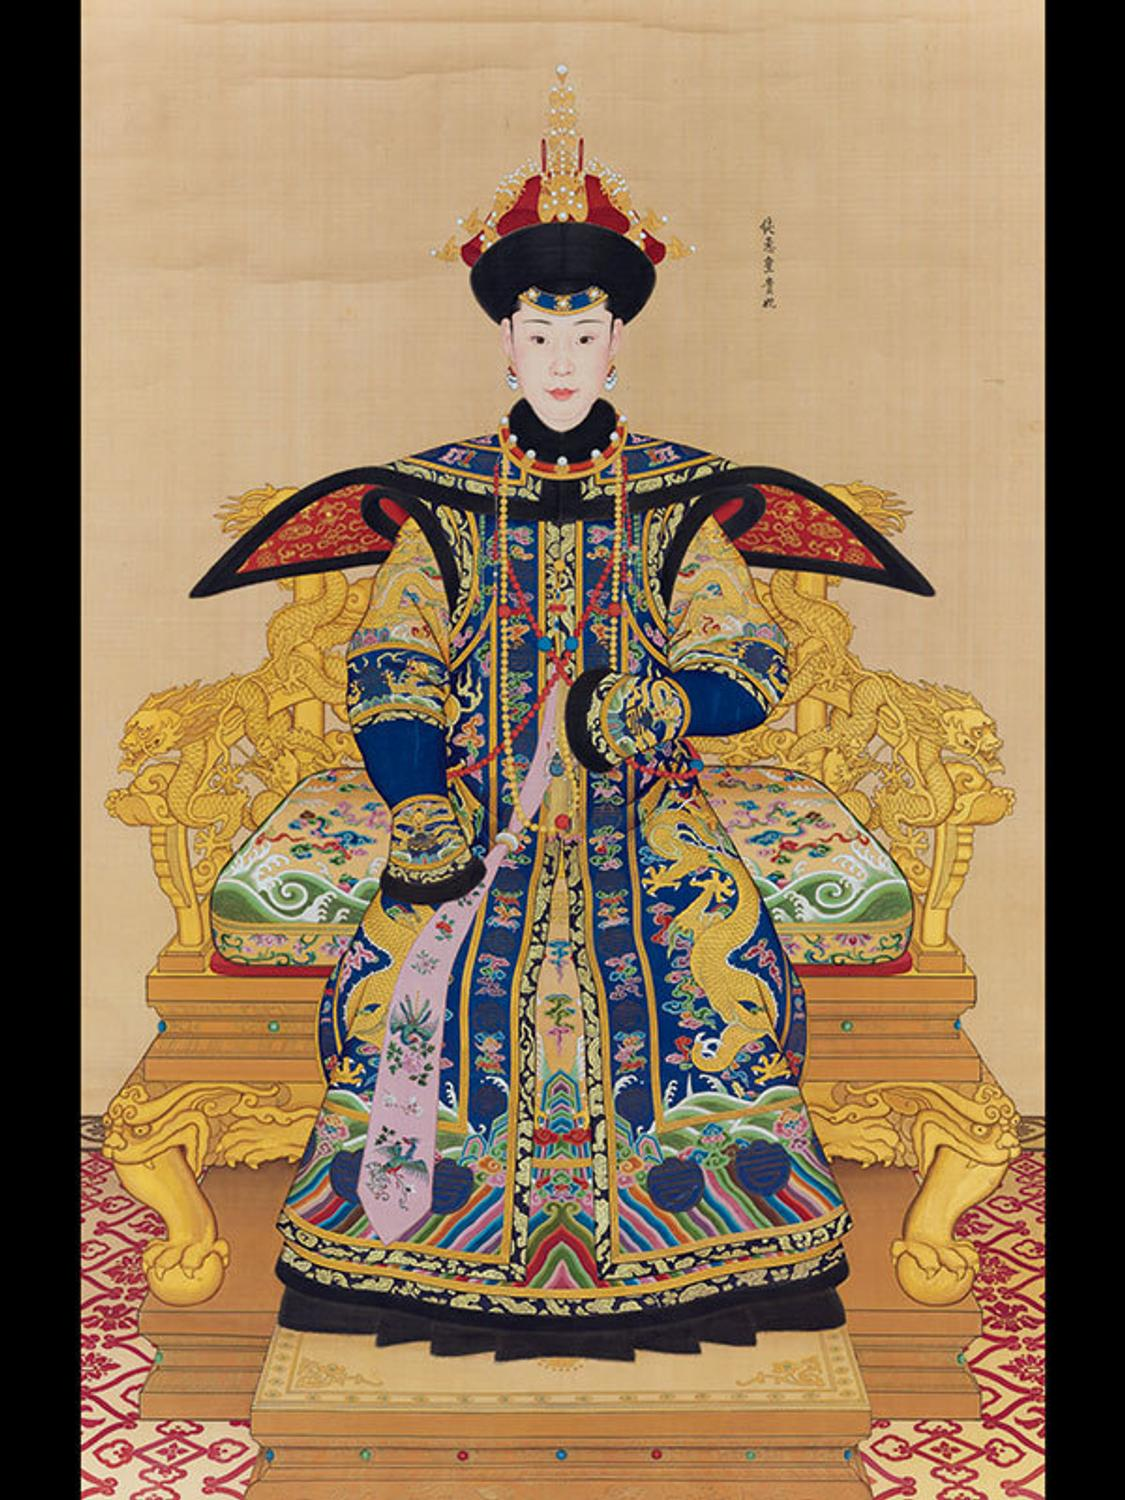 Chinese Imperial Portrait Tops 344 Million Sale Series in